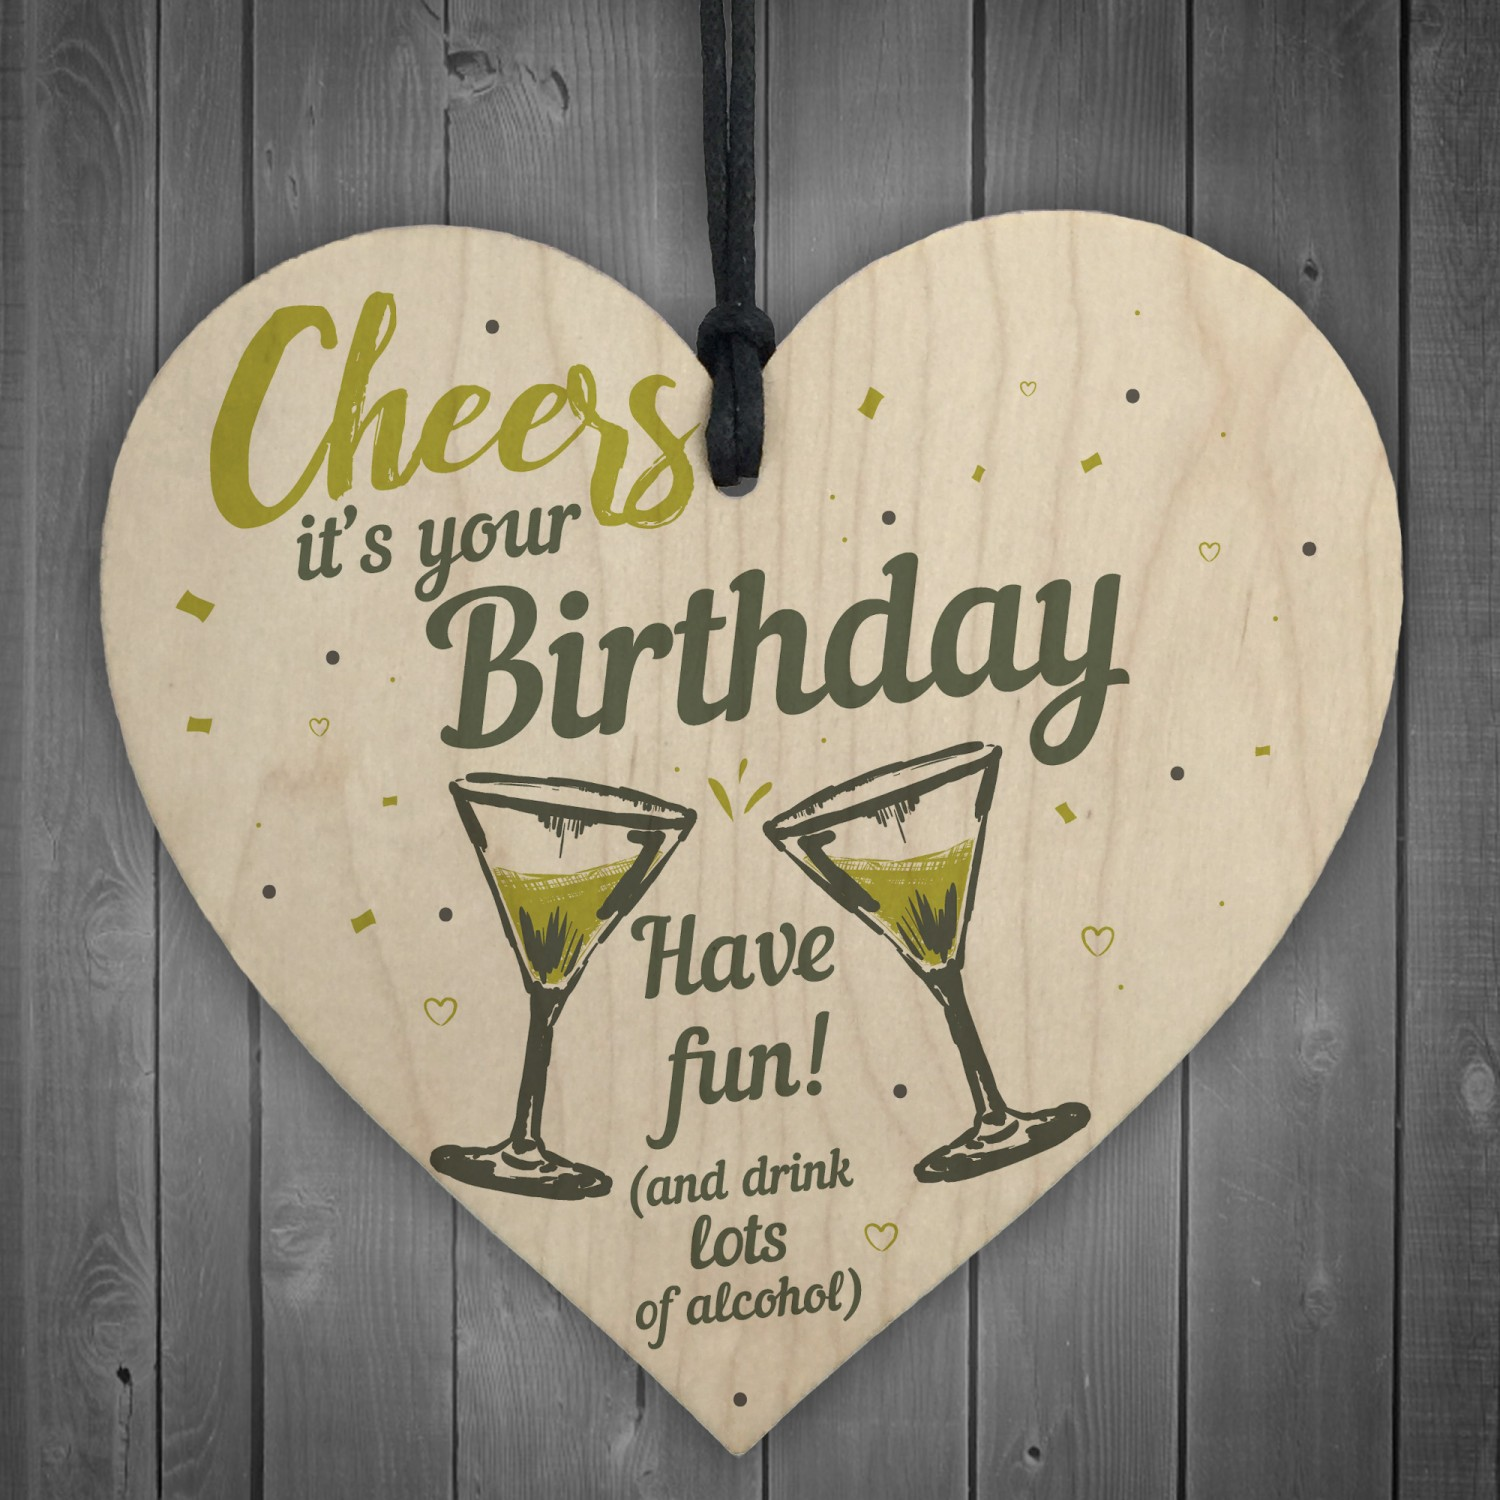 Cheers Birthday Friendship Friend Gift Alcohol Novelty Sign